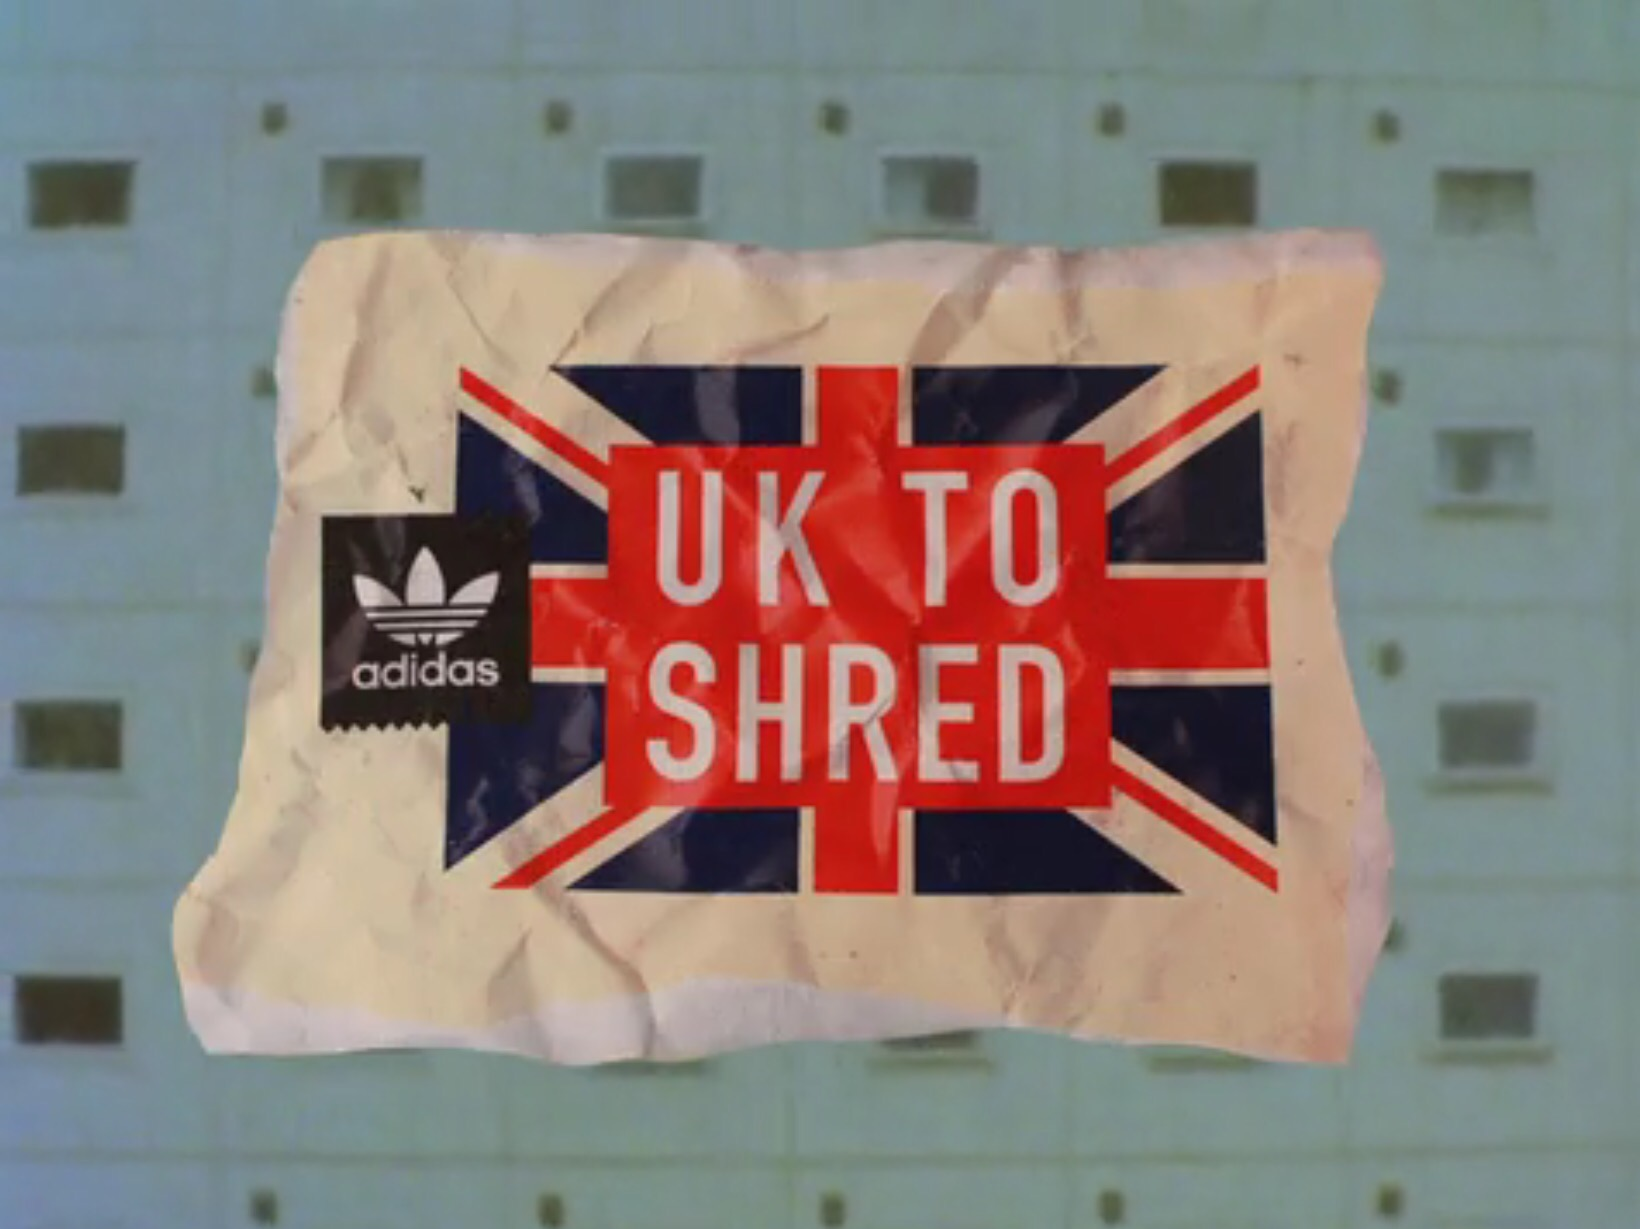 UK to Shred!